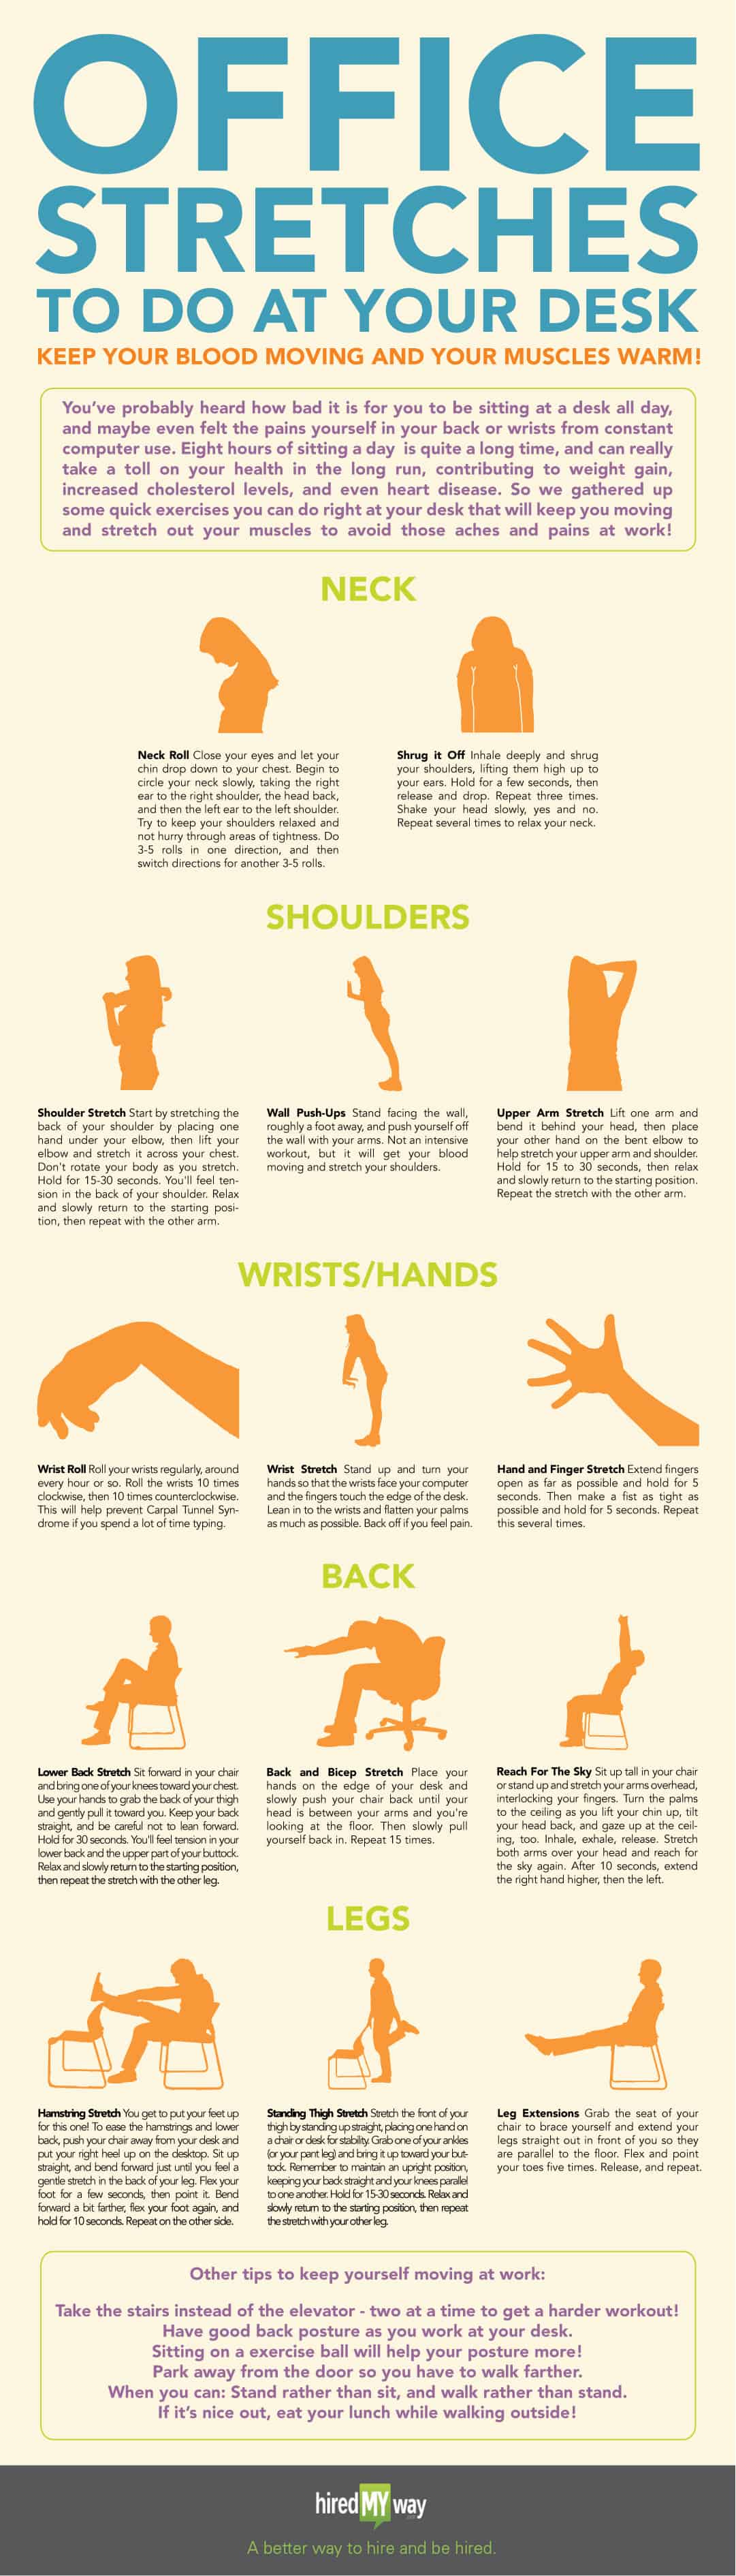 Office Stretches Infographic